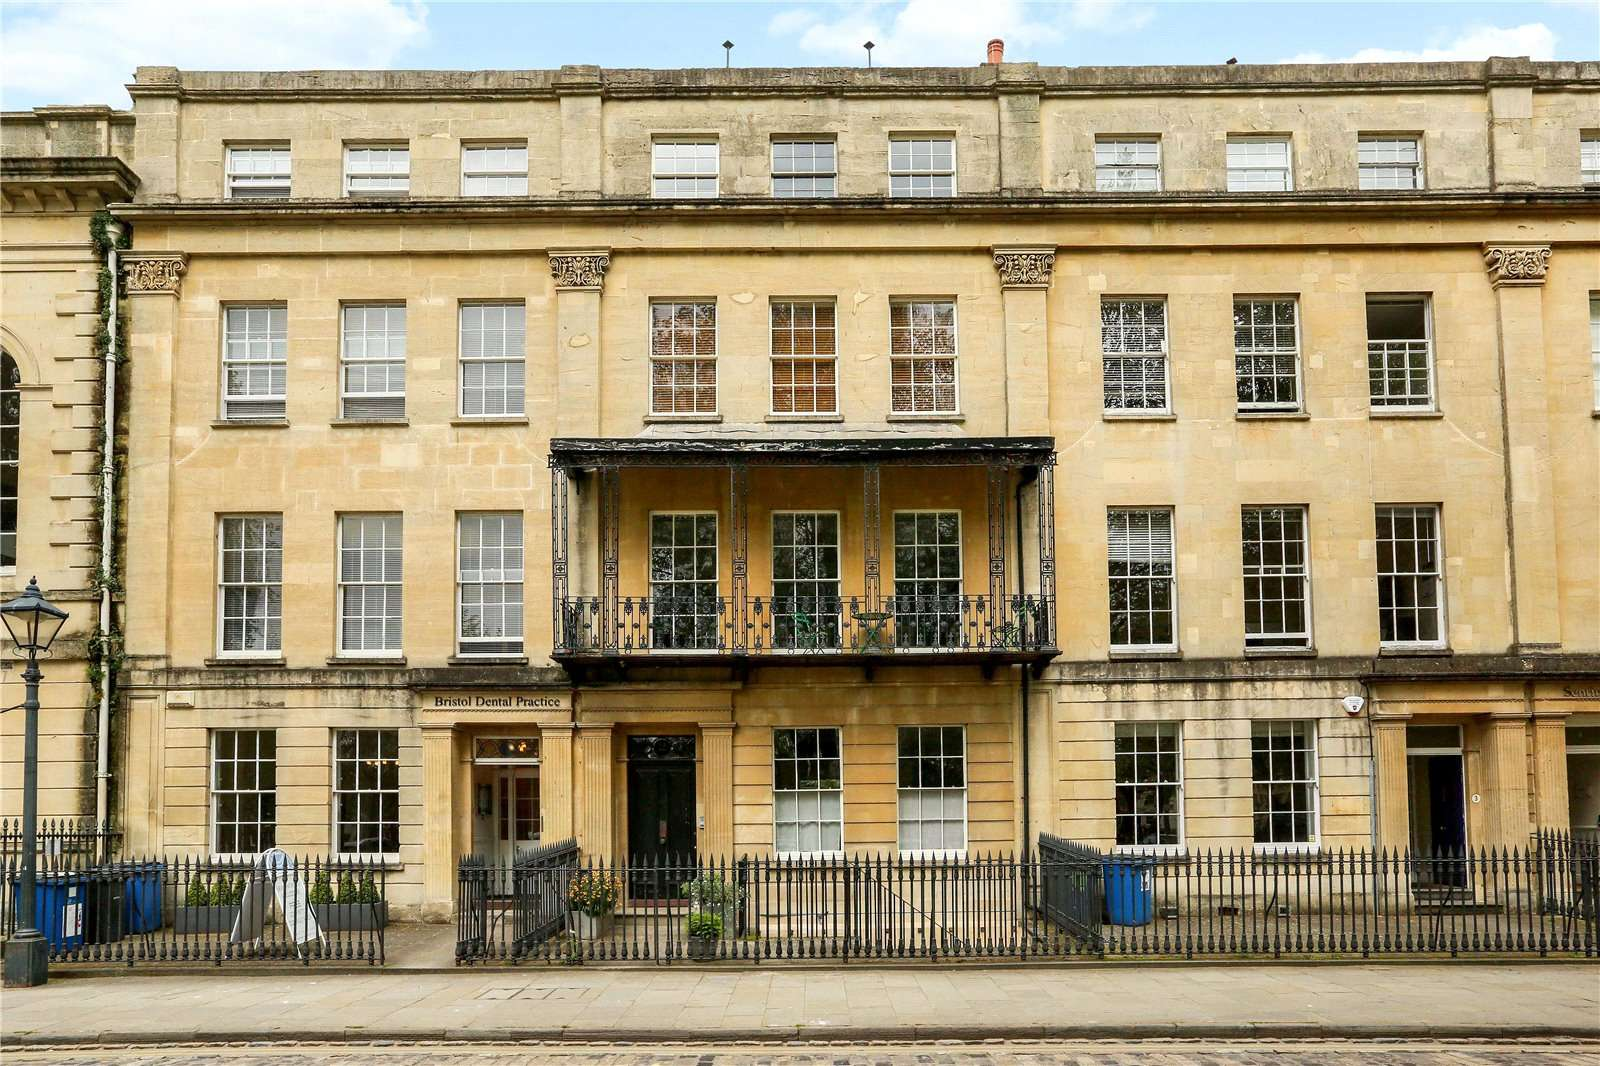 Savills | Queen Square, Bristol, BS1 4JQ | Properties for sale